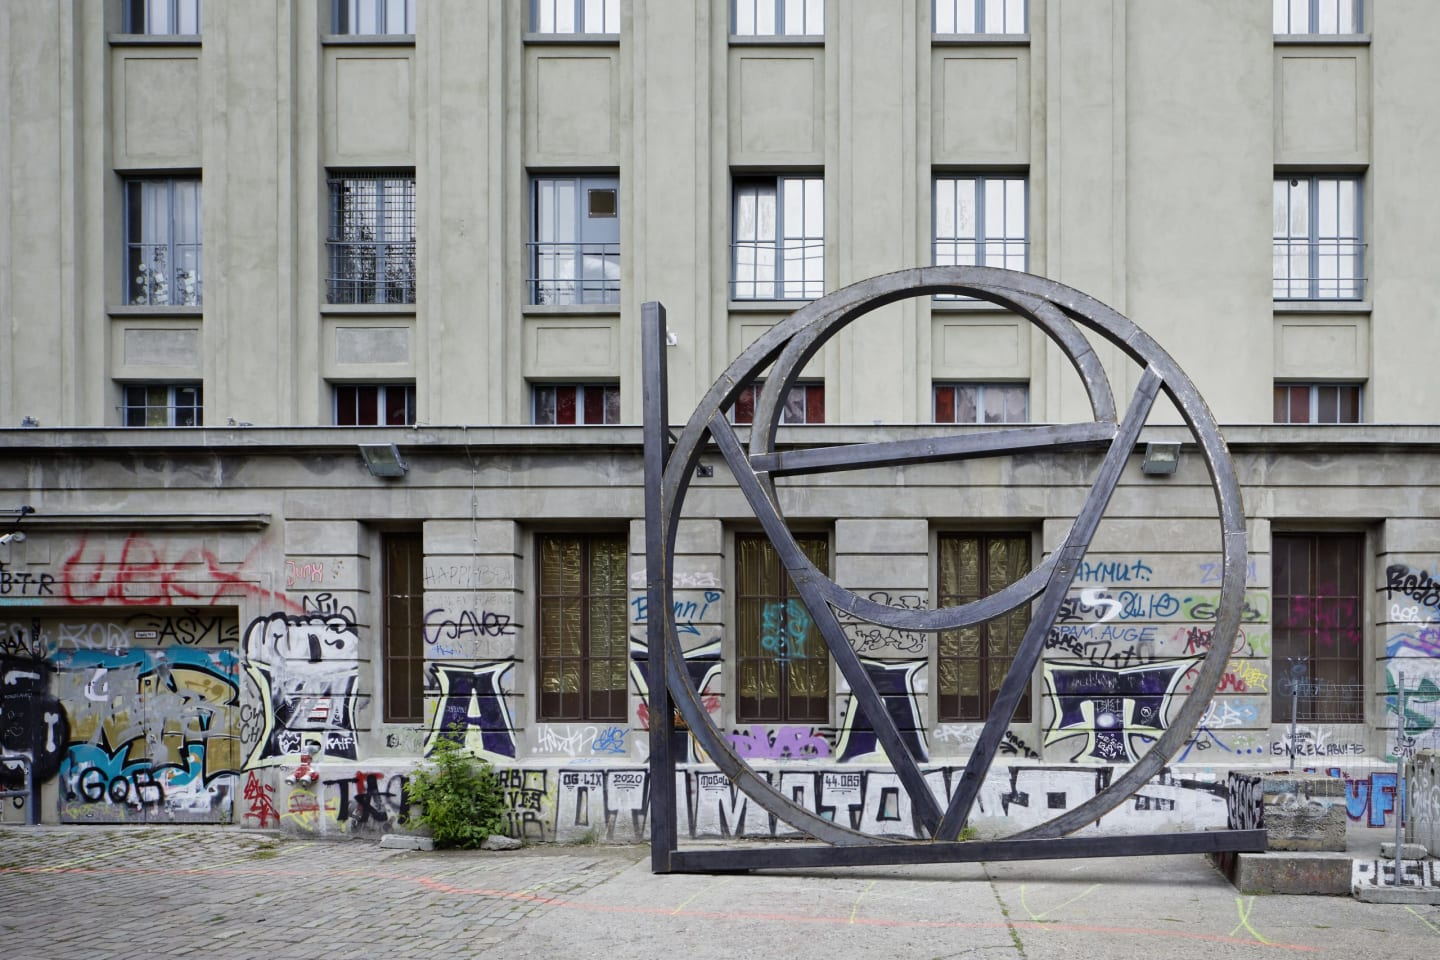 Studio Berlin / Boros Foundation, Berghain, Berlin 2020 Artwork: © Dirk Bell Photo: © Noshe